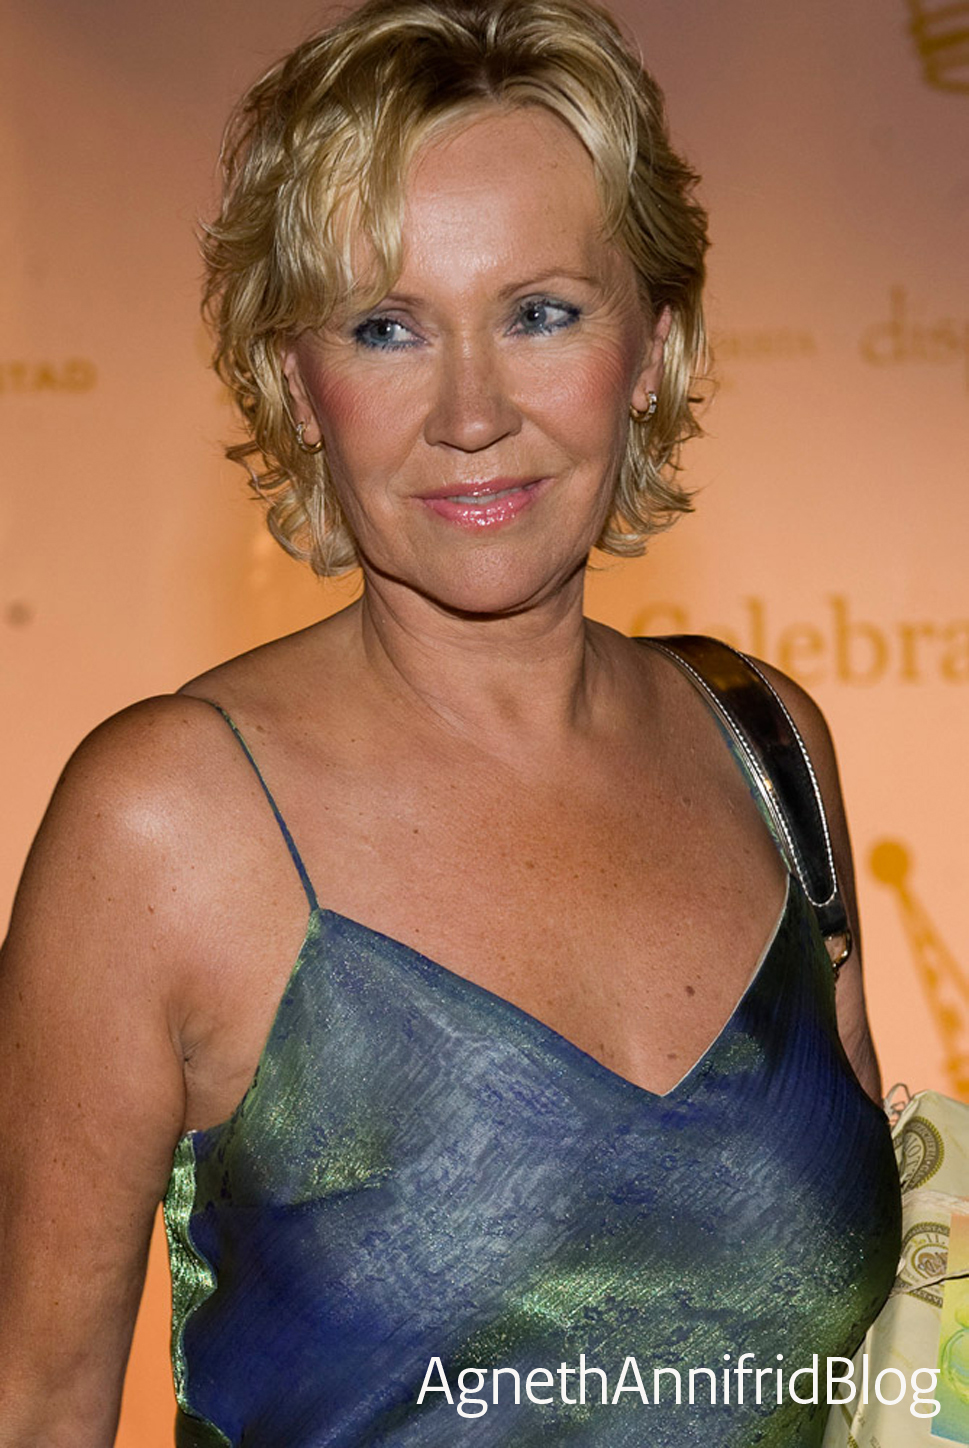 Lovely Agnetha picture from recent years in large size!